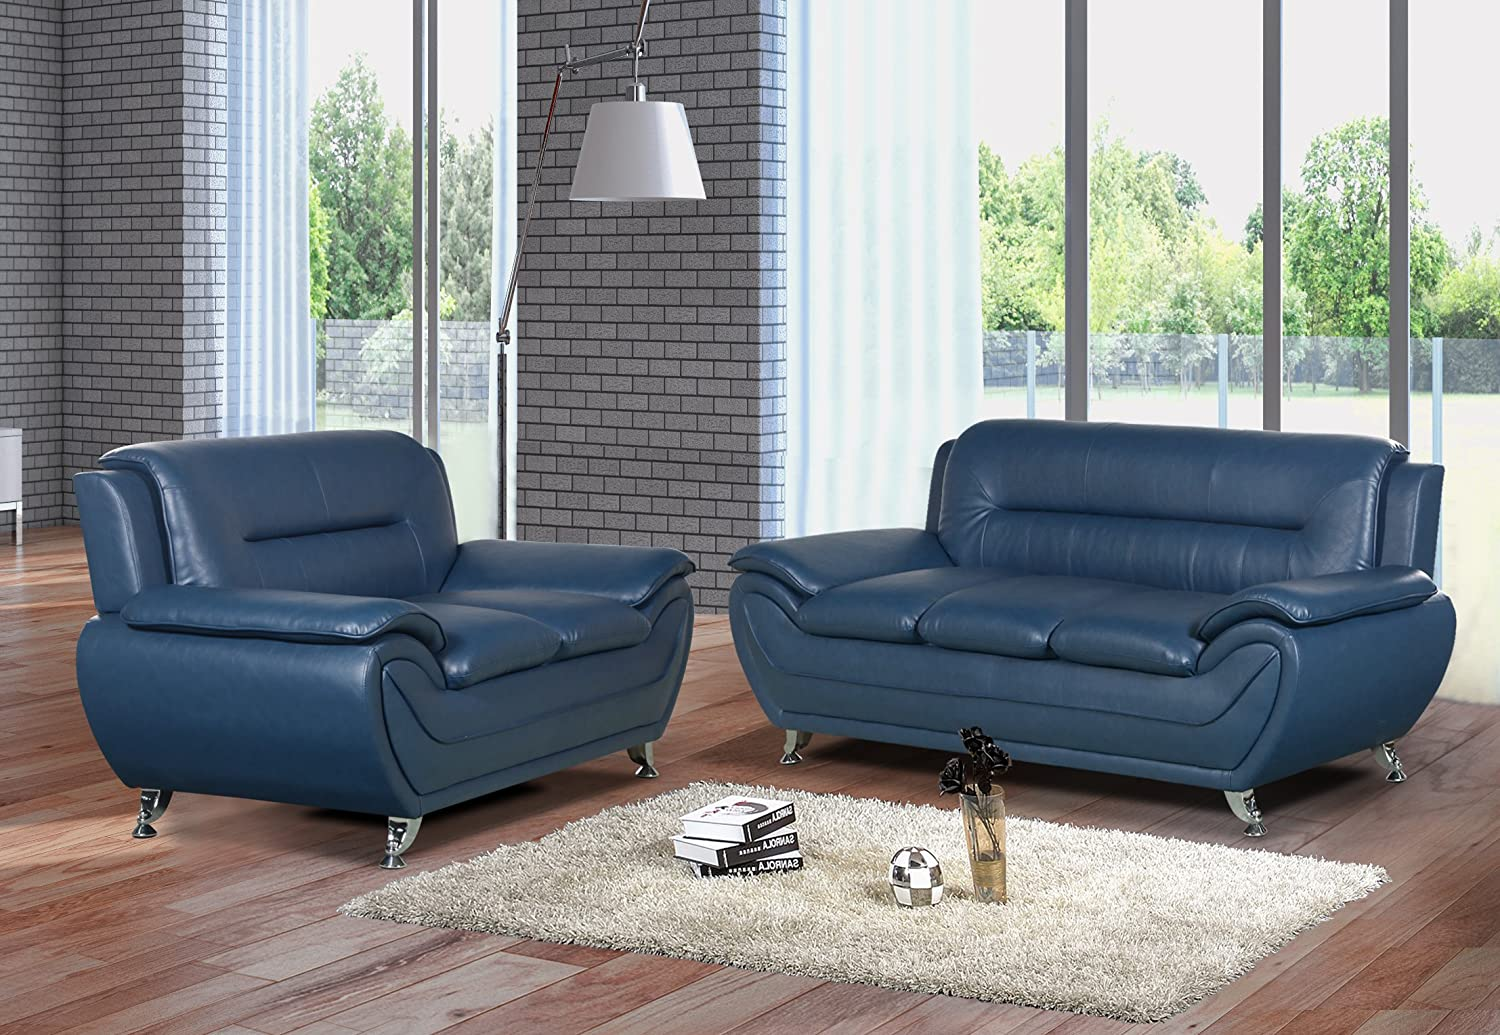 US Livings Anya Modern Living Room Polyurethane Leather Sofa Set (Sofa and  Loveseat, Blue)